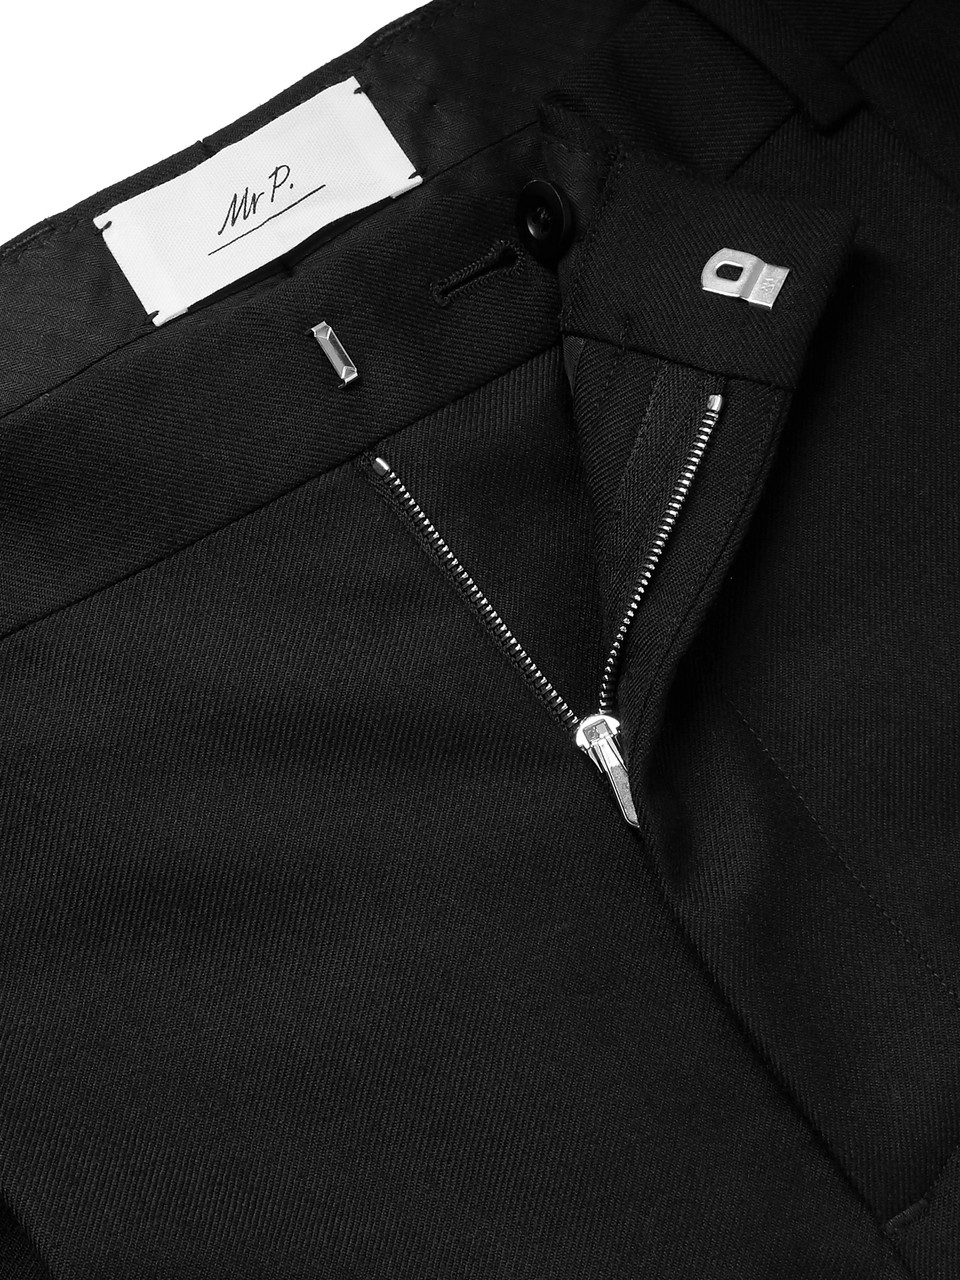 Mr P. Tapered Pleated Black Worsted-Wool Trousers